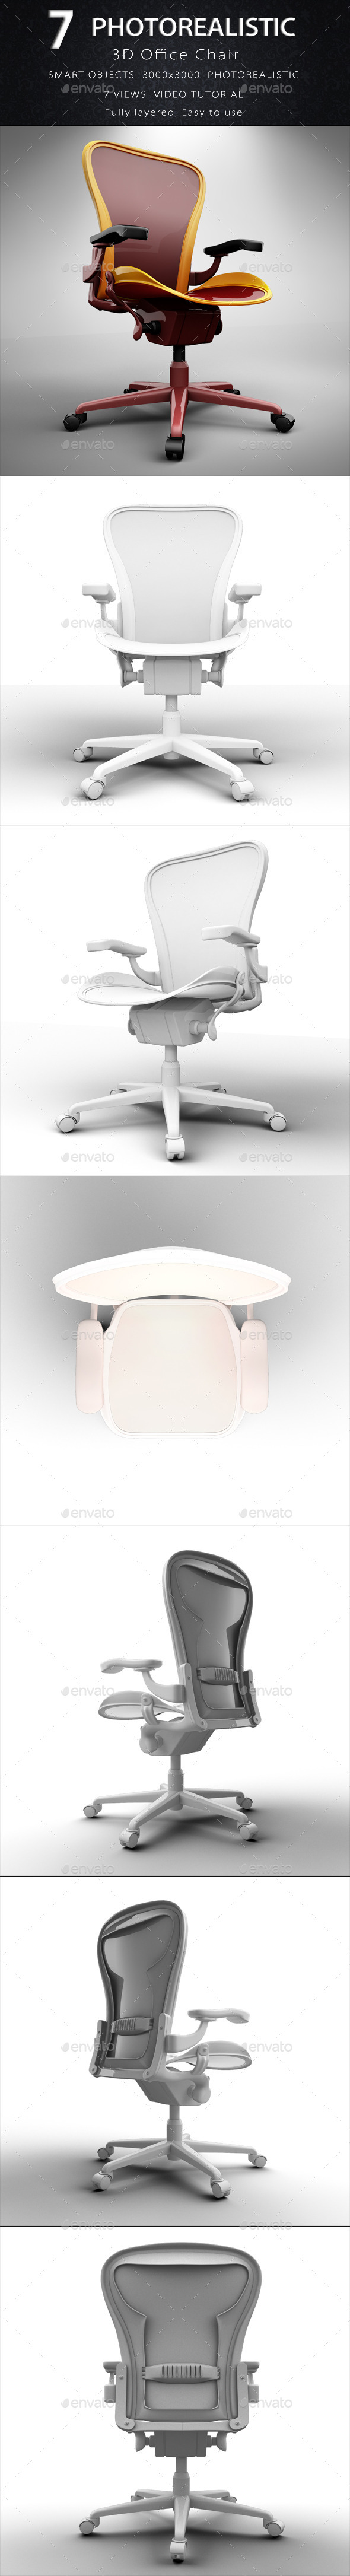 GraphicRiver Office Chair 10642375